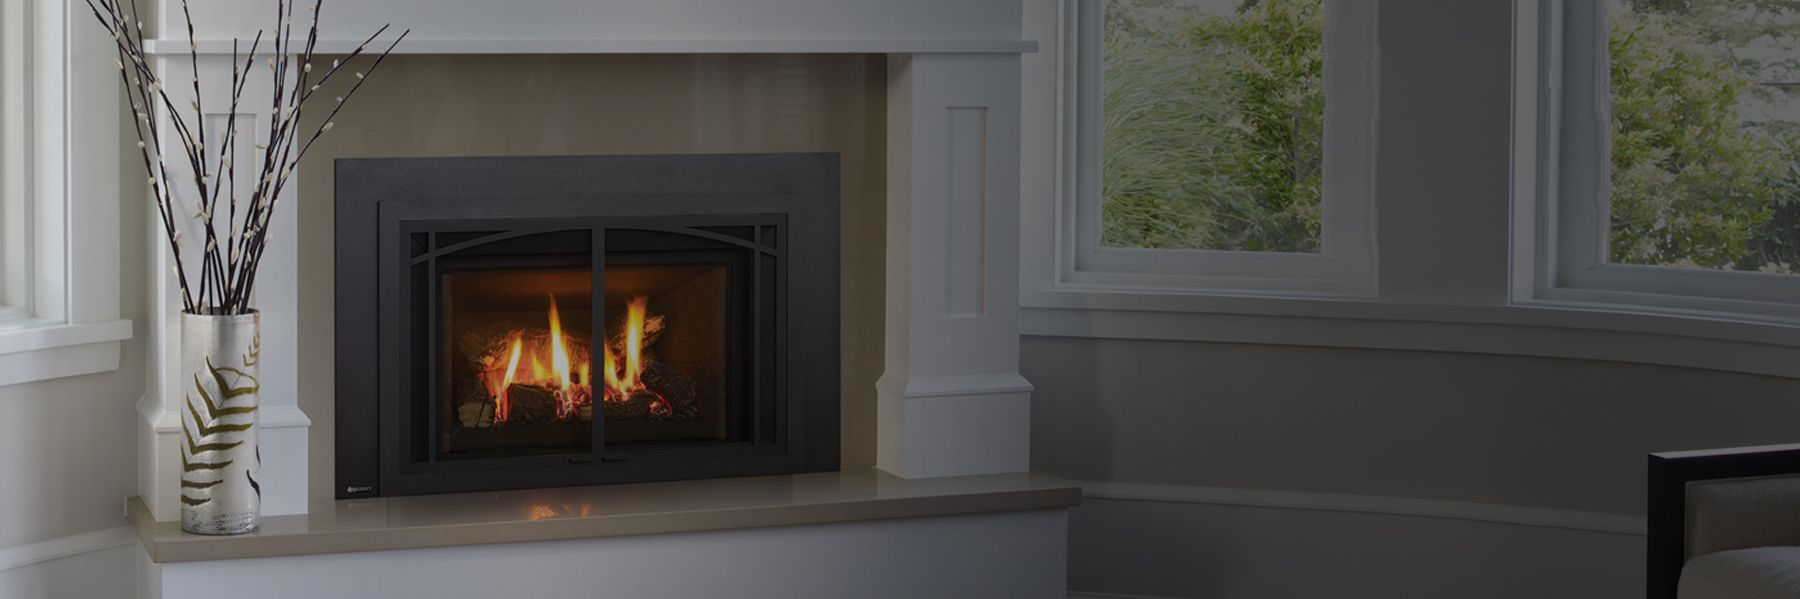 slider-regency-gas-insert